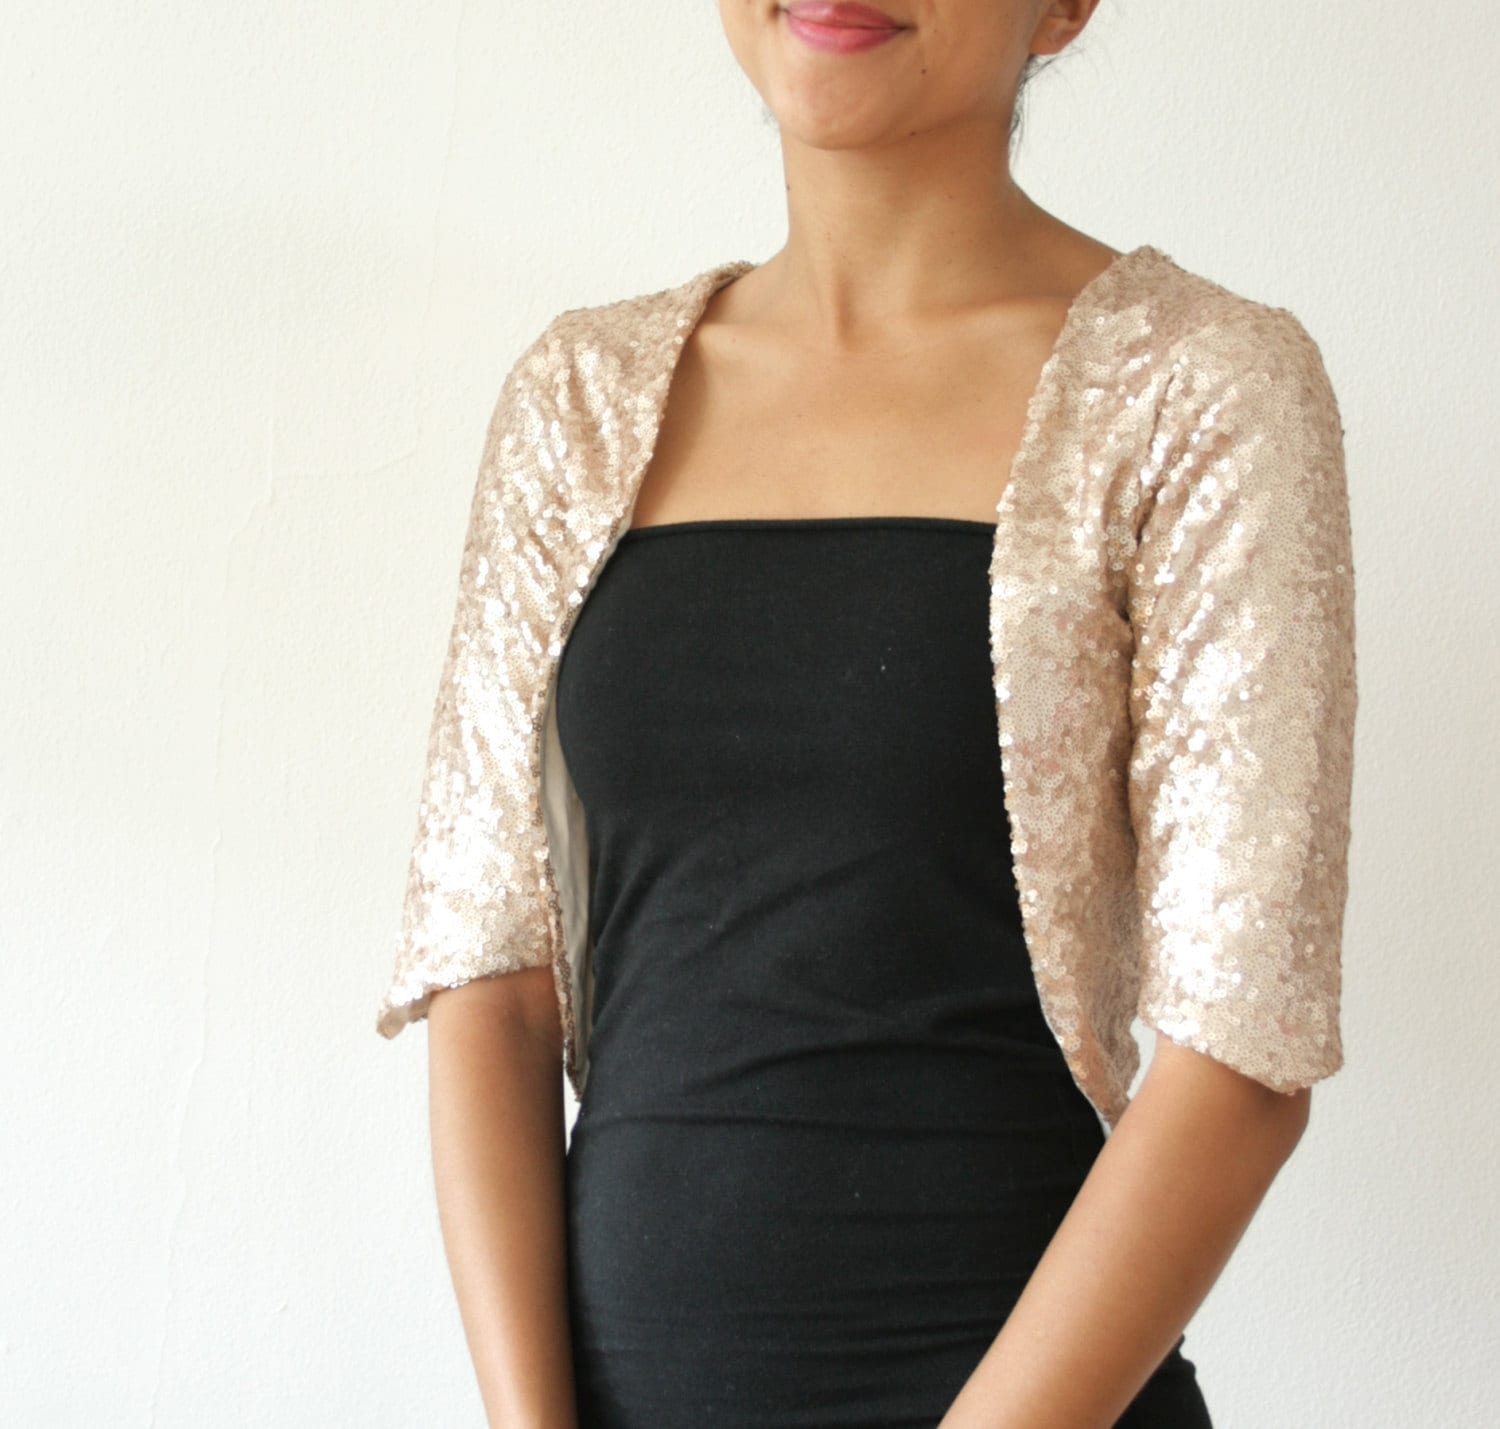 Gold Champagne Sequin Bolero Shrug Formal Wedding or Bridal Party, Holiday - Classic and Simple - EcoFriendly - SALLY - Kulayan